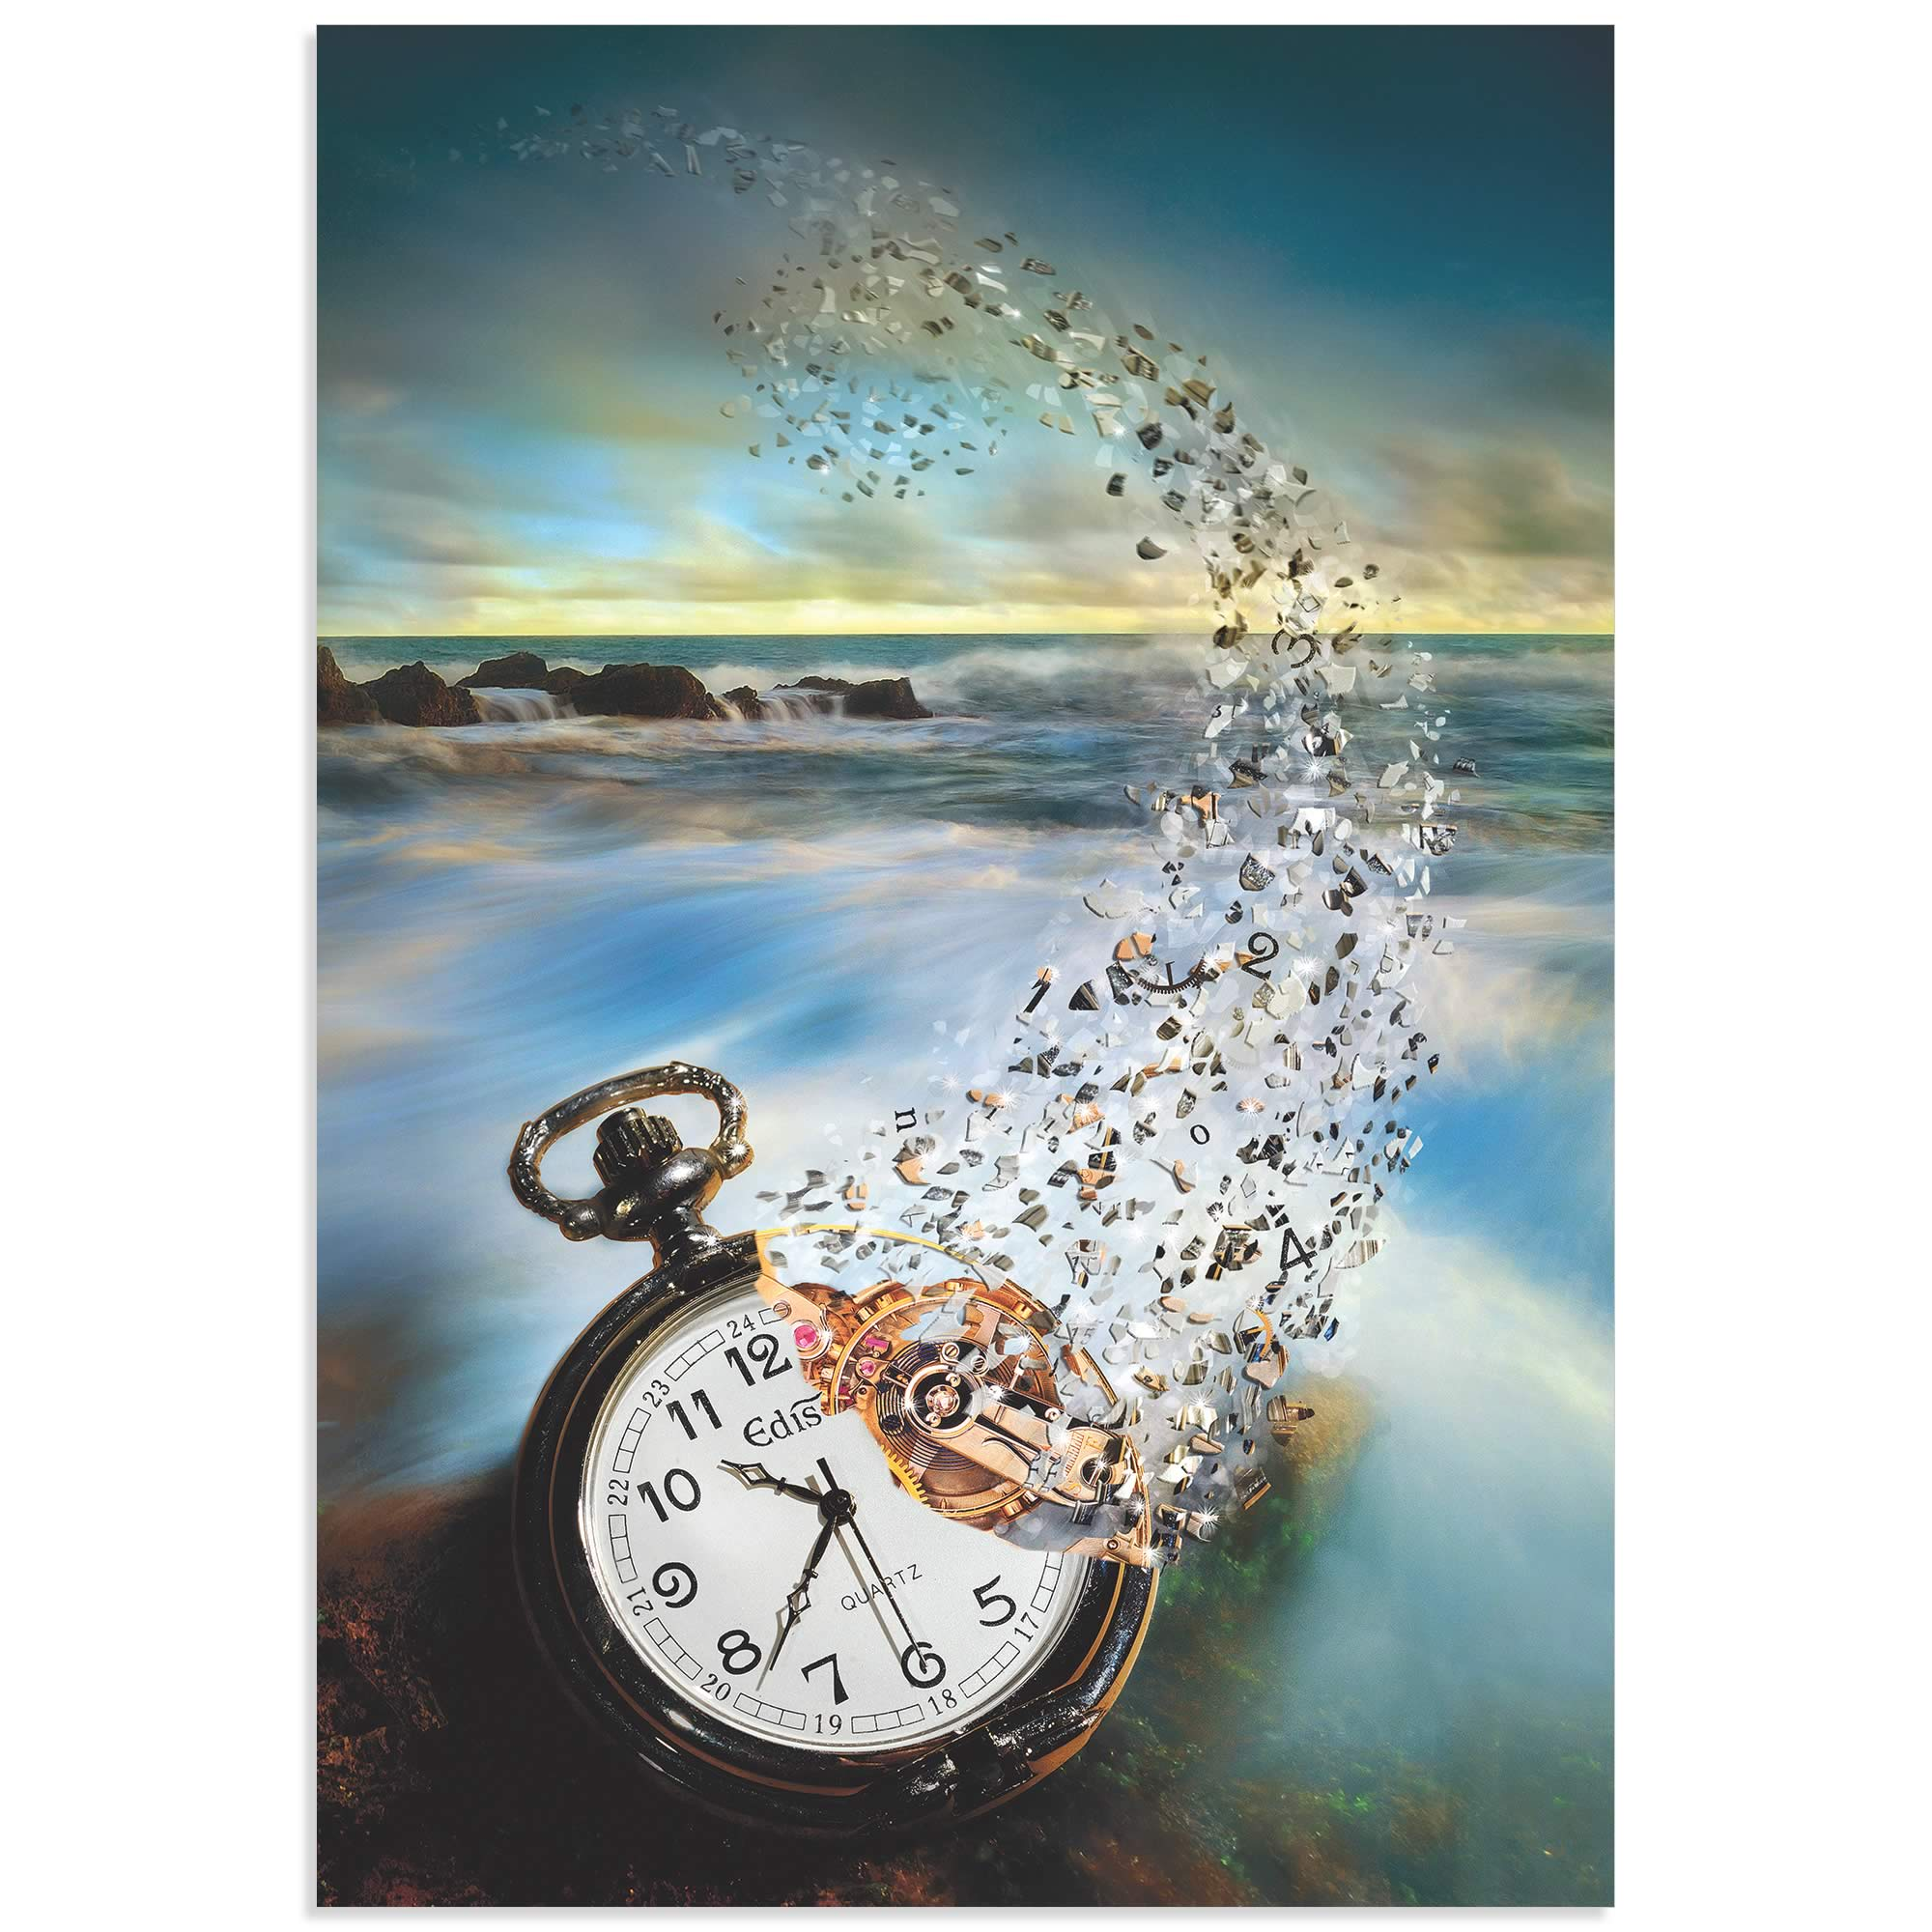 The Vanishing Time by Sandy Wijaya - Steam Punk Art on Metal or Acrylic